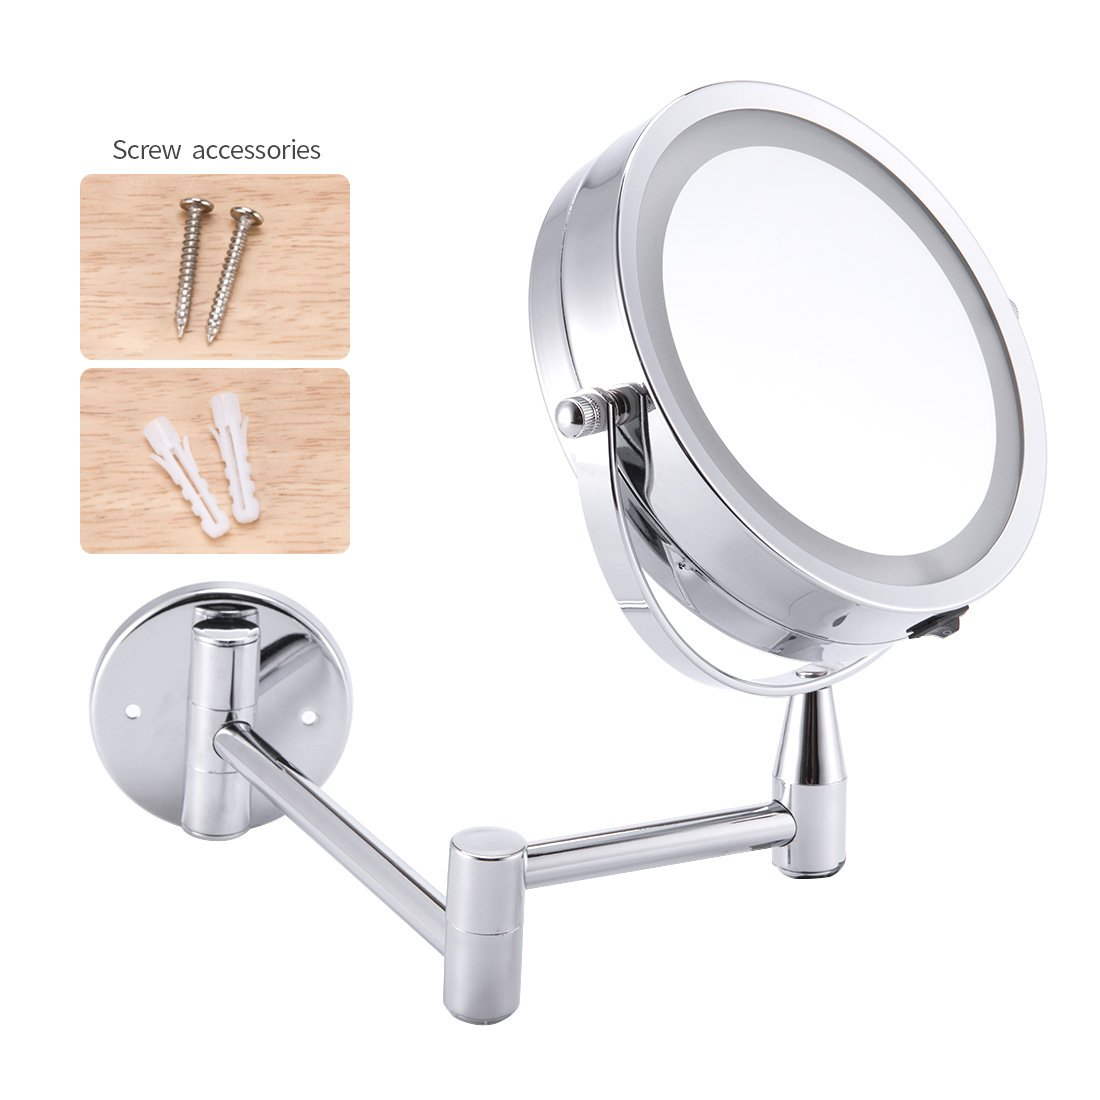 1X/3X Magnification Led Cosmetic Mirror Wall Mounted, Double Side, Adjustable, Rotating Function, Lighted Vanity Mirror, Powered by 4 x AAA Batteries (not Included) by FIRMLOC (Image #2)